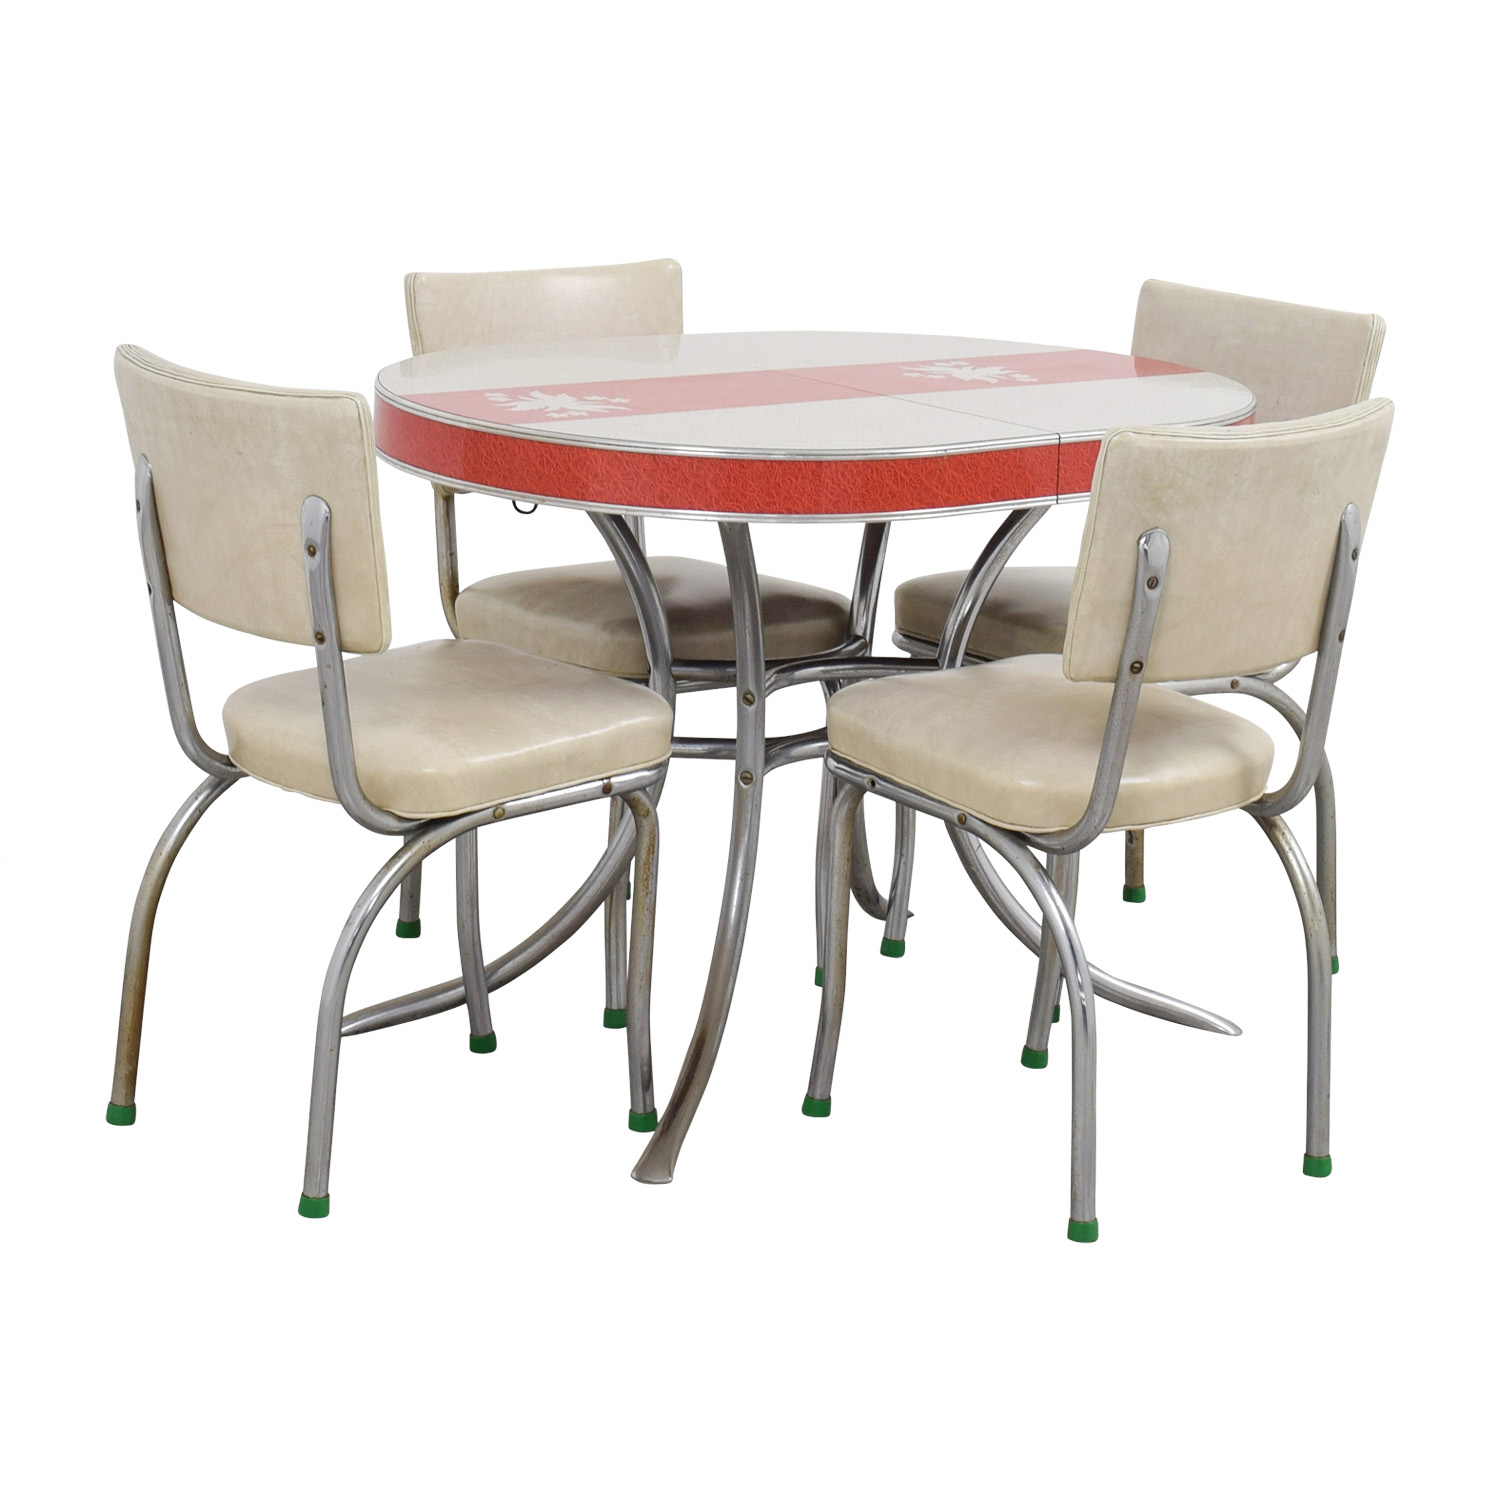 used kitchen chairs small table and canada 90 off vintage extendable formica top aluminum